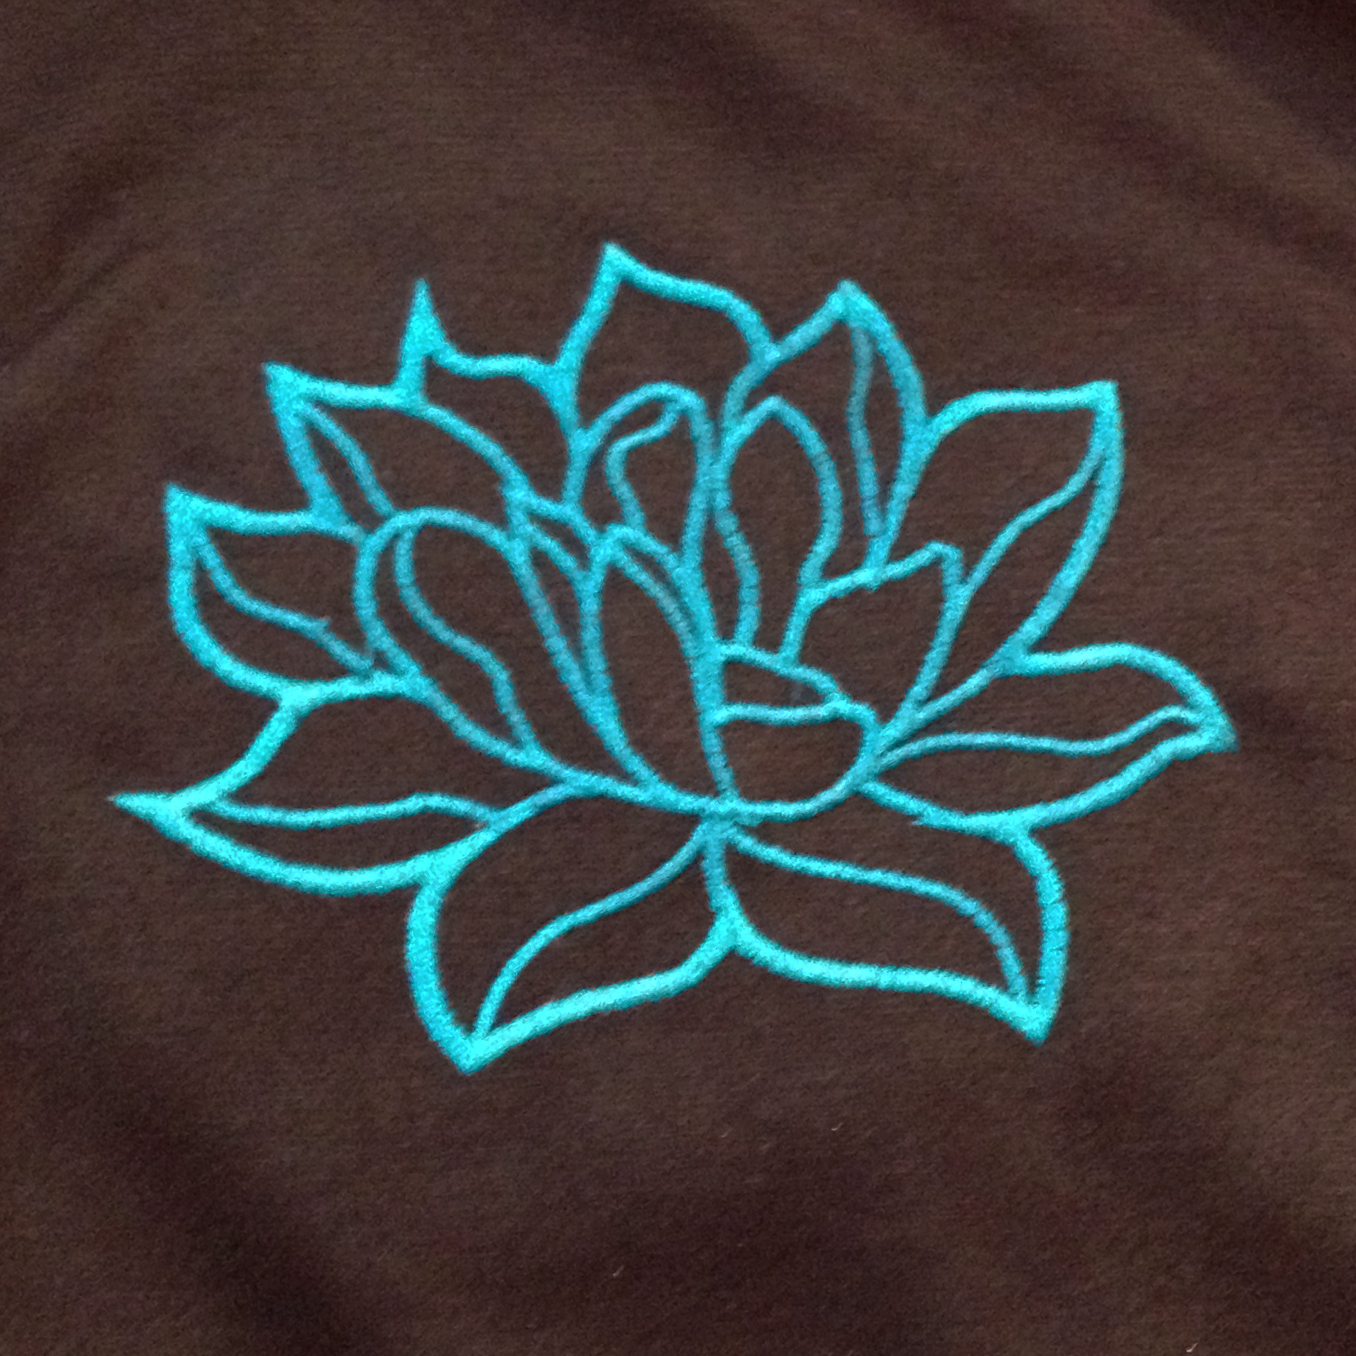 Modern and elegant lotus flower applique embroidery design modern and elegant lotus flower applique embroidery design simple lotus flower is perfect symbol of good fortune in buddhism biocorpaavc Choice Image